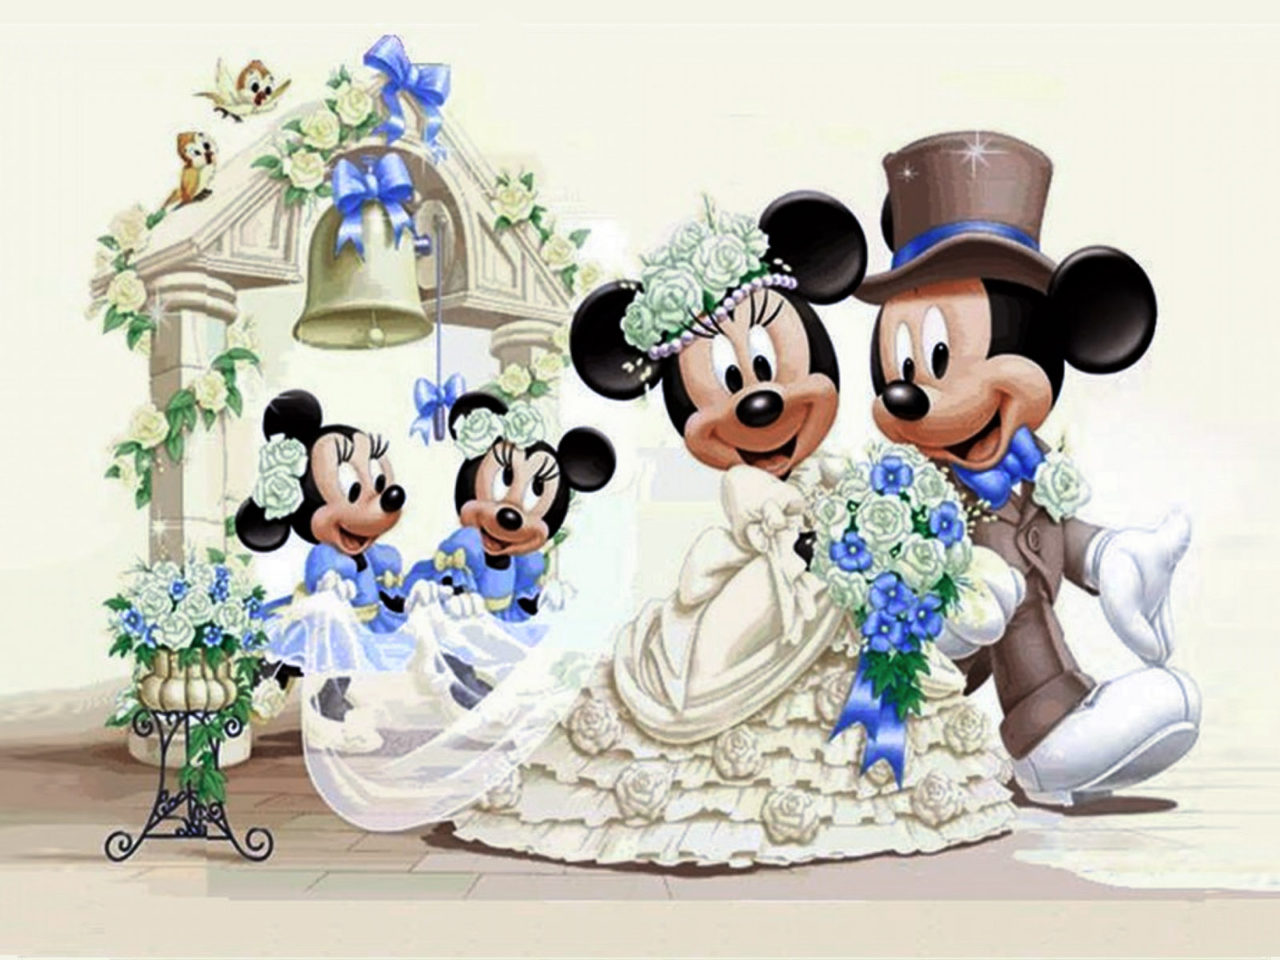 Free Hd Live Wallpapers For Pc Mickey Mouse And Minnie Mouse Wedding Wallpaper Hd